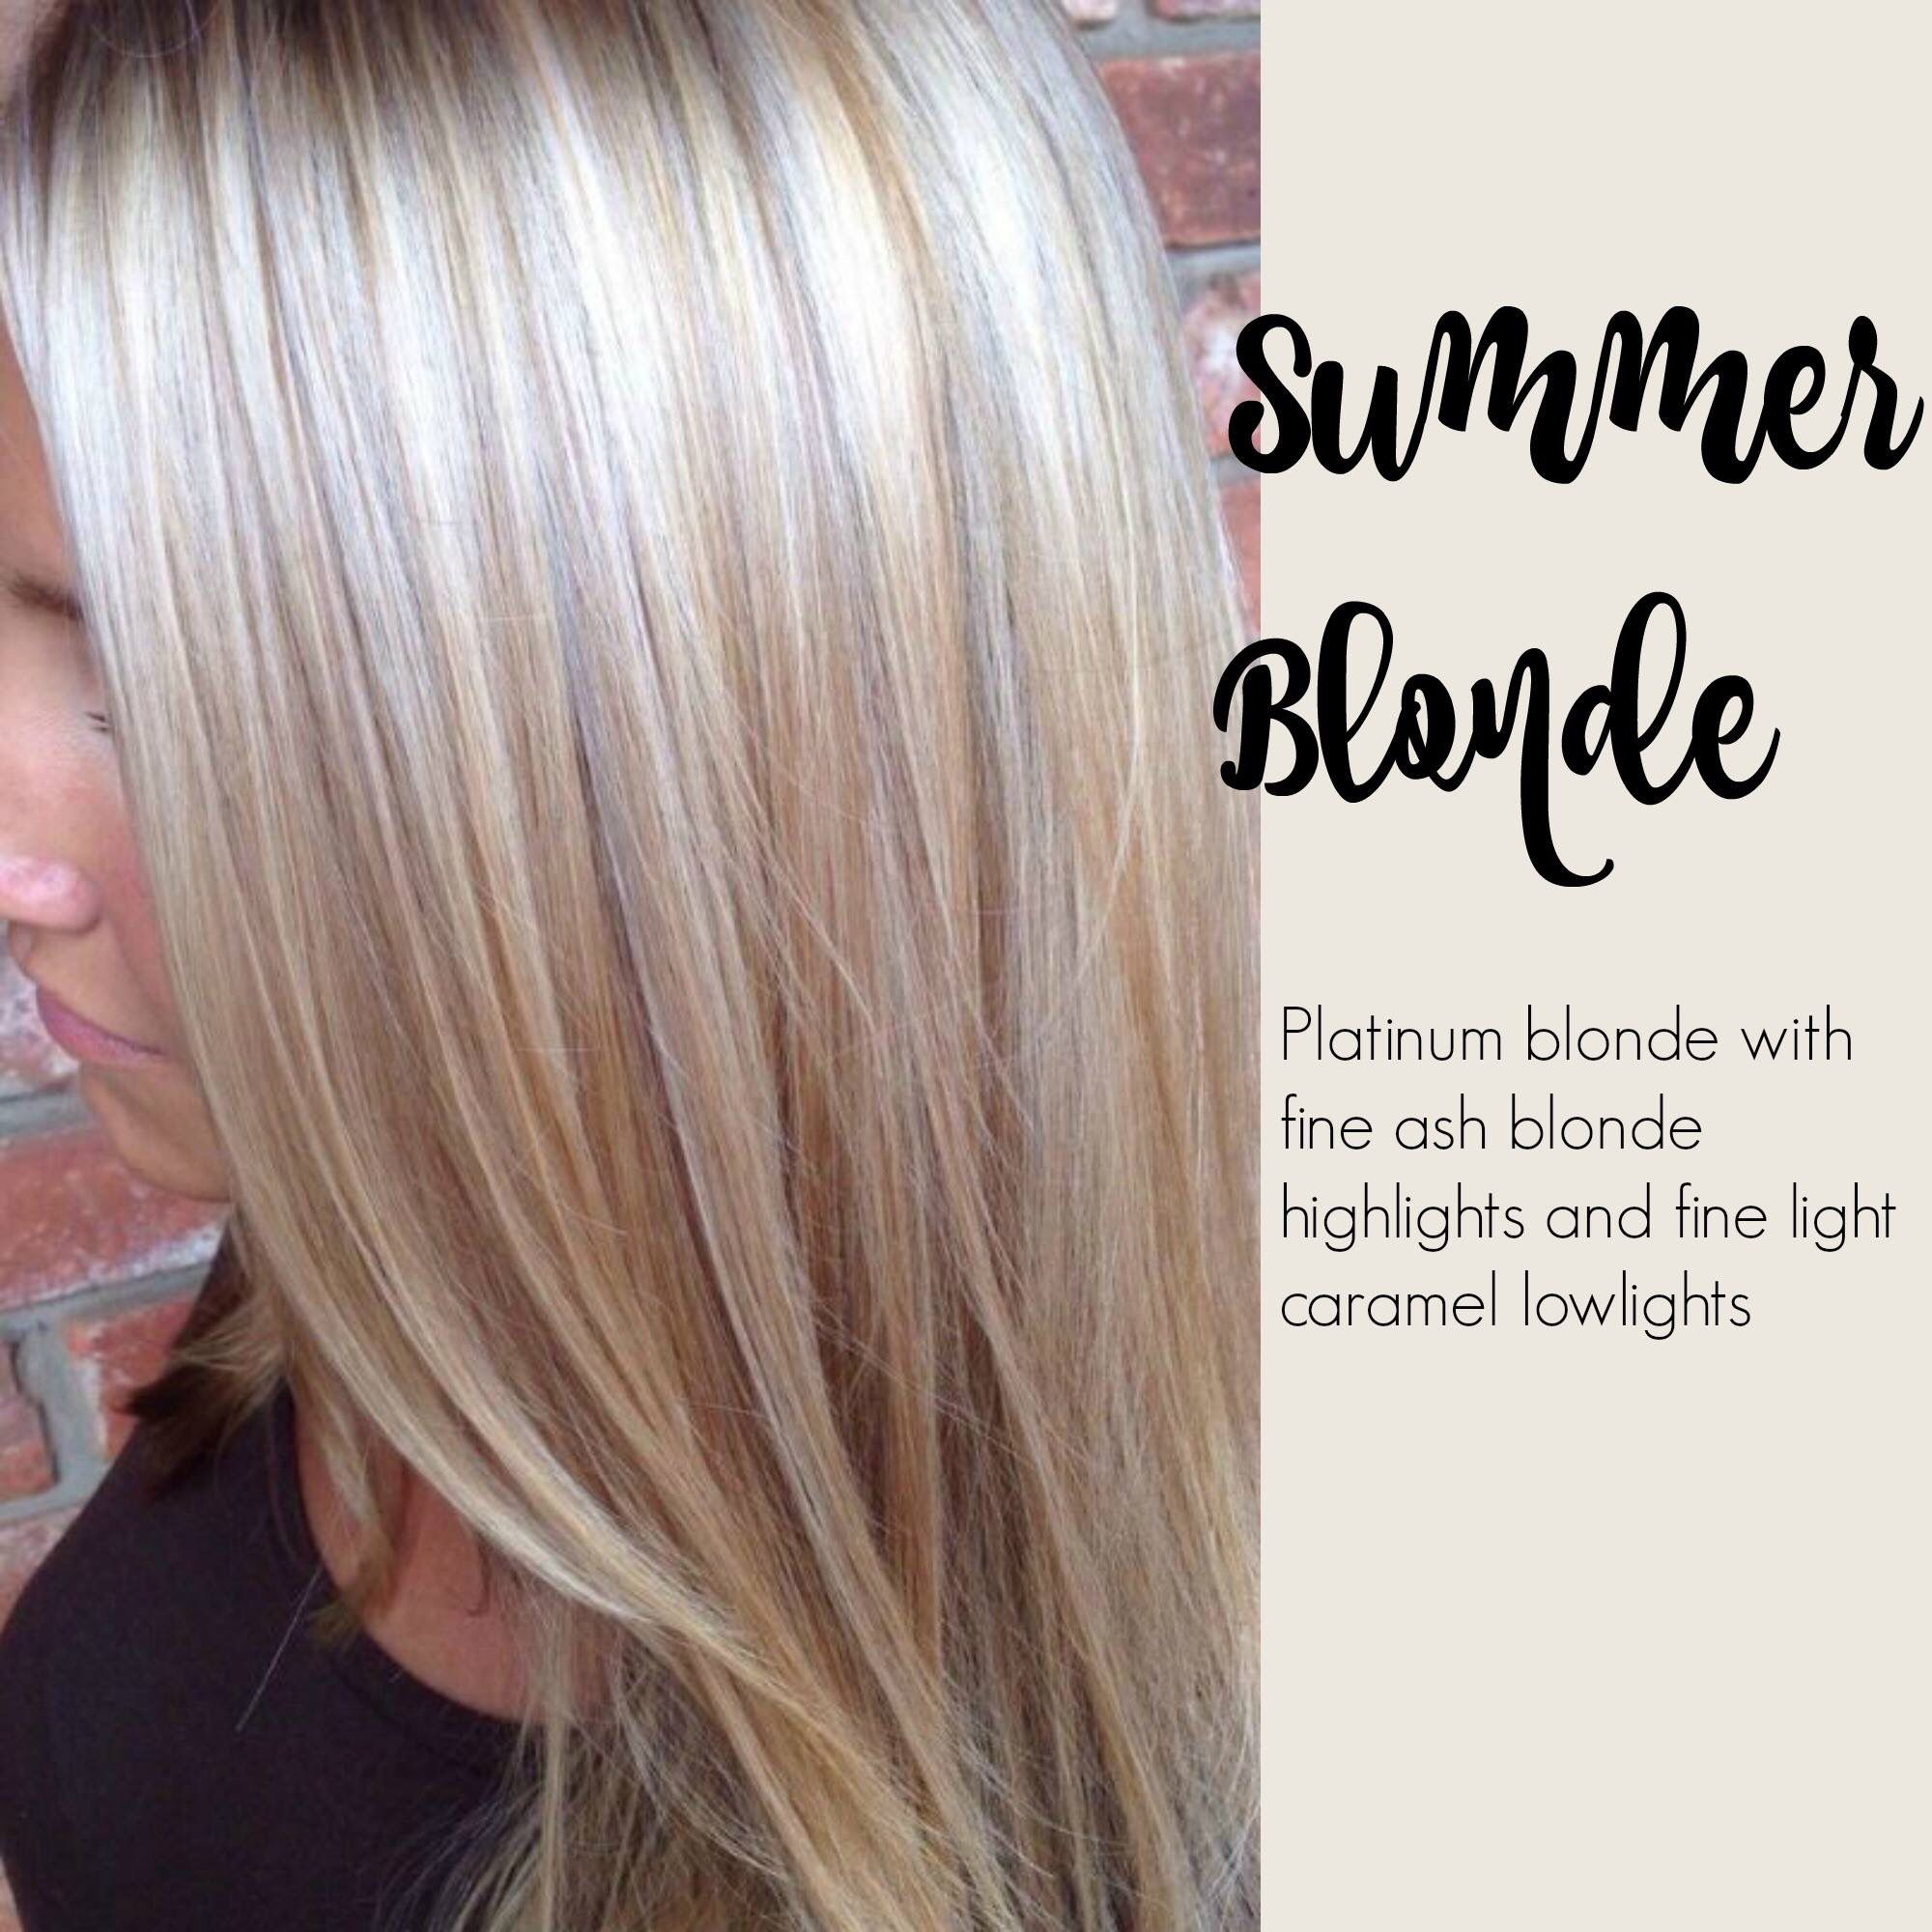 Summer Blonde Platinum Blonde With Fine Ash Blond Highlights And